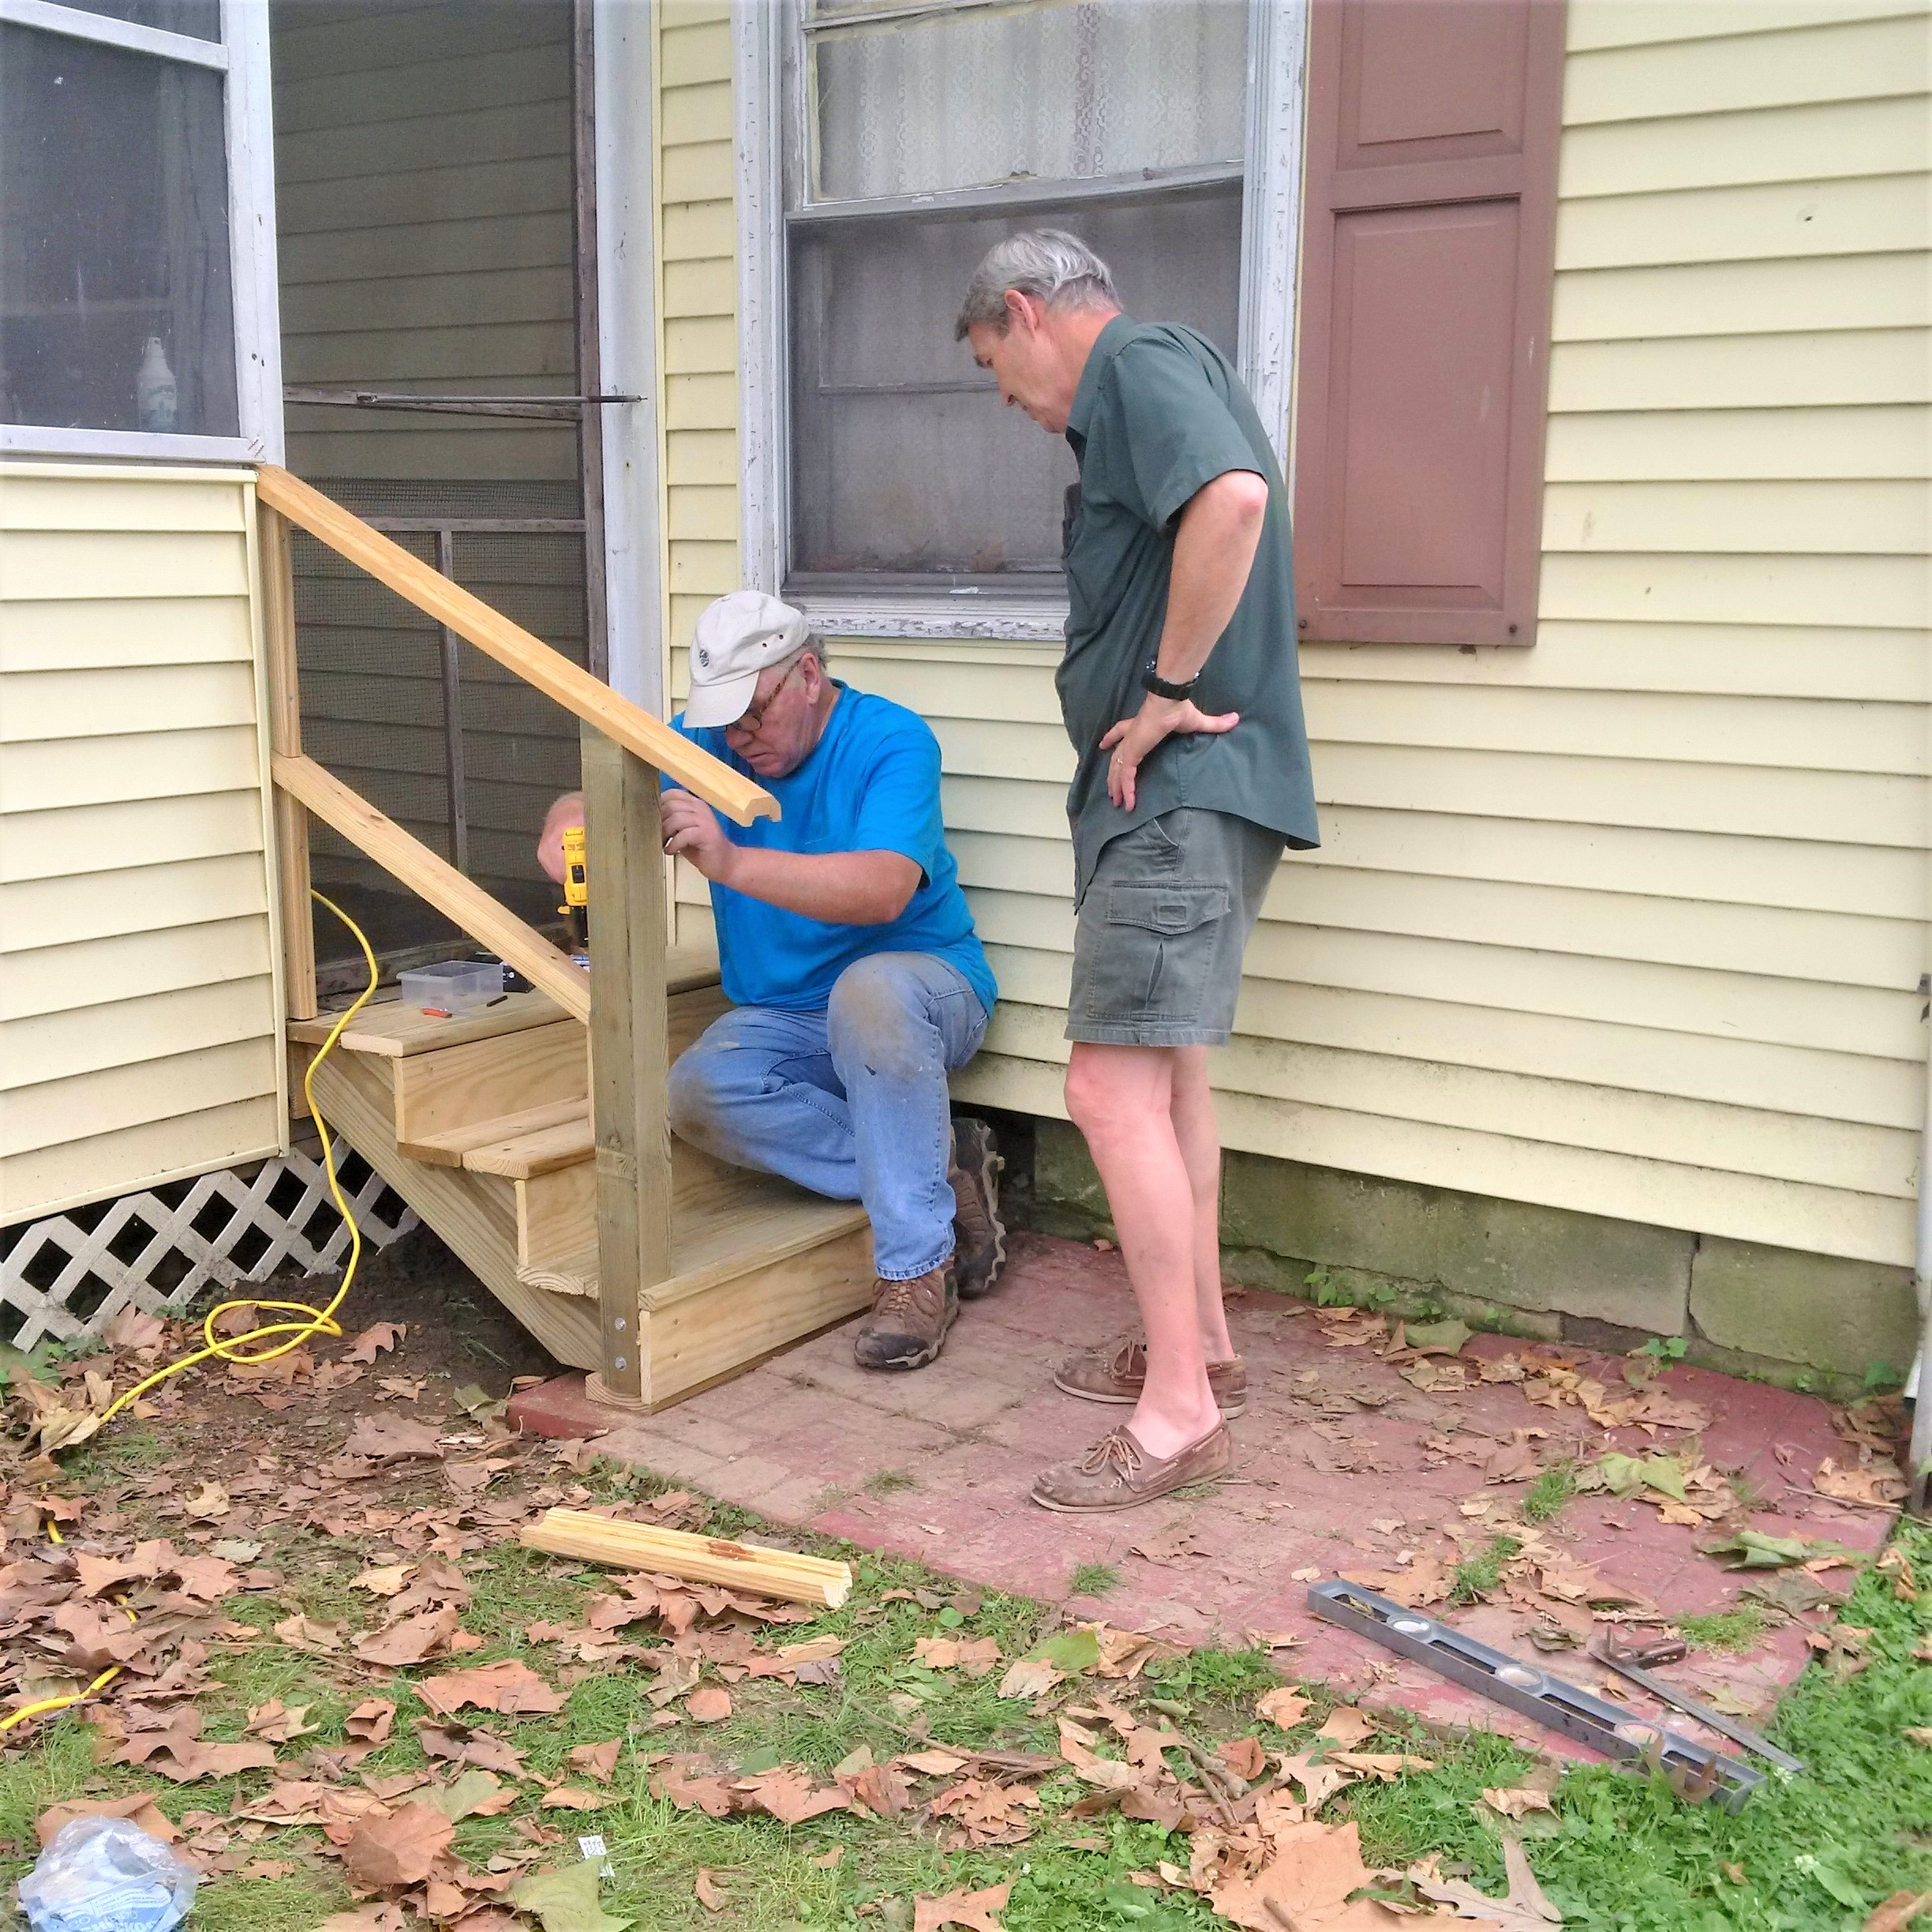 Two men building wooden steps